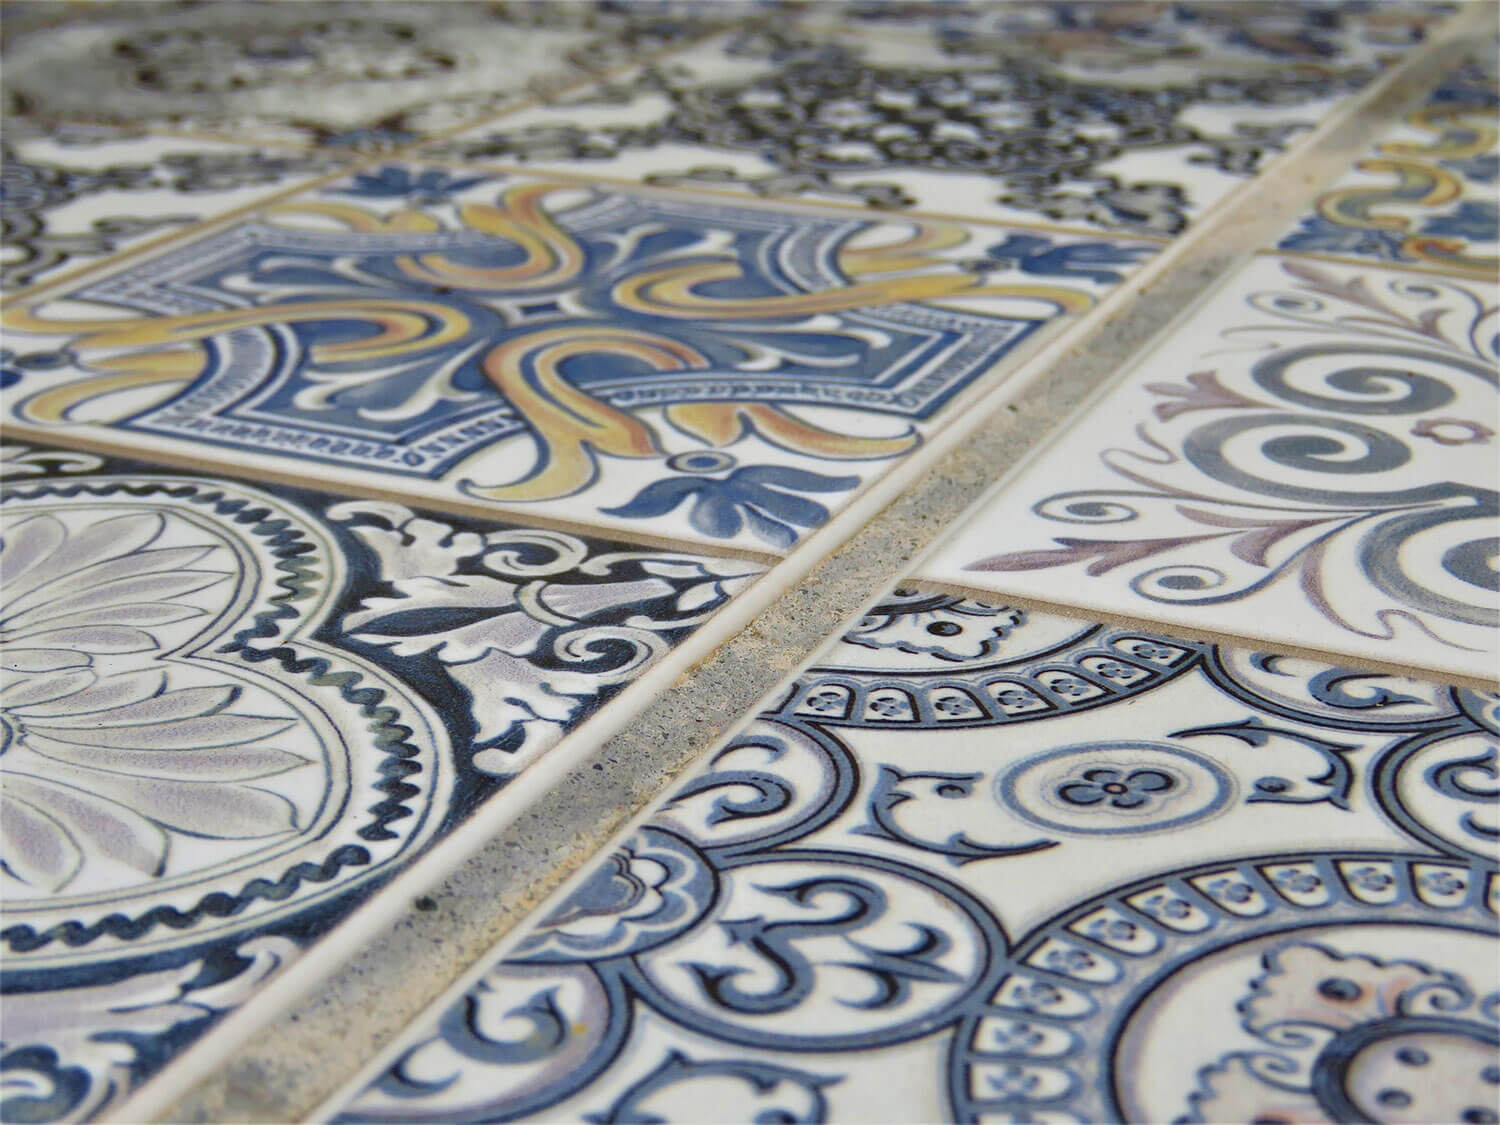 Using Mosaic Tile To Make Your Floor